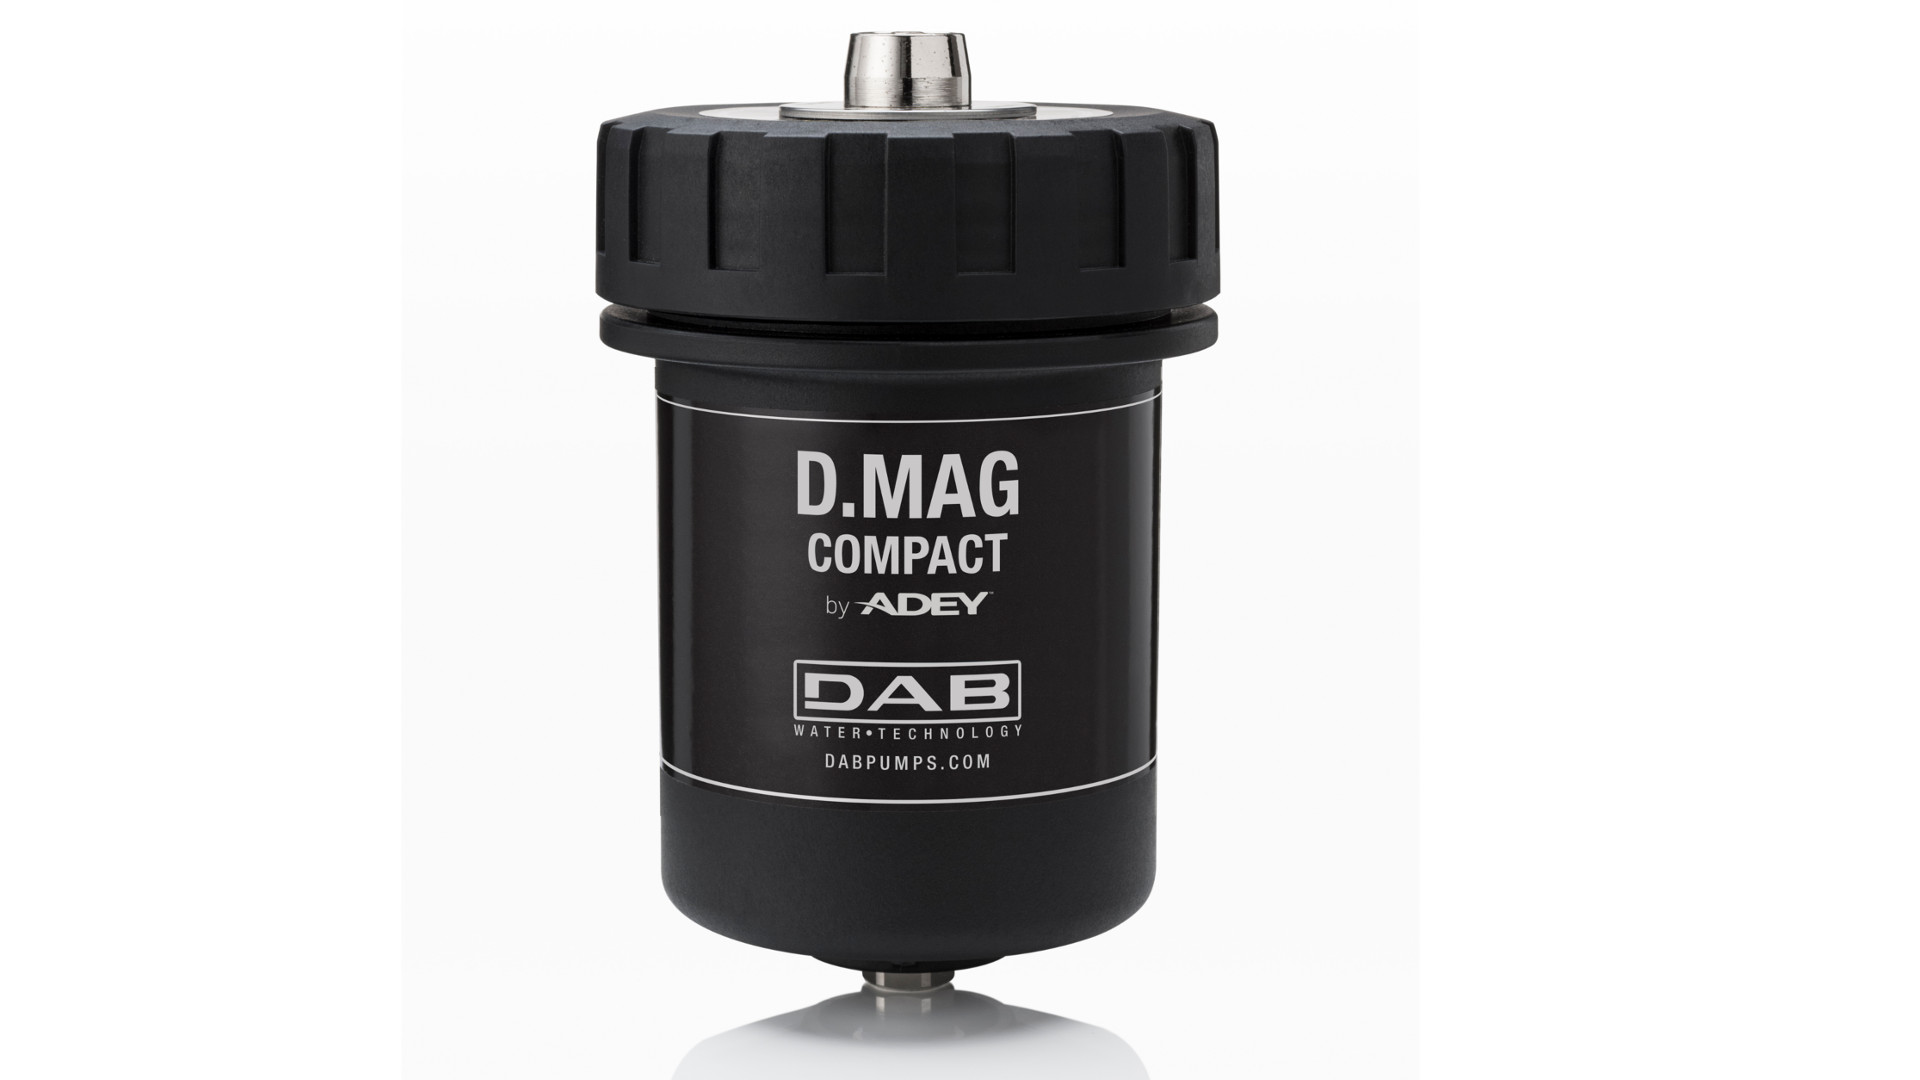 D.Mag Compact